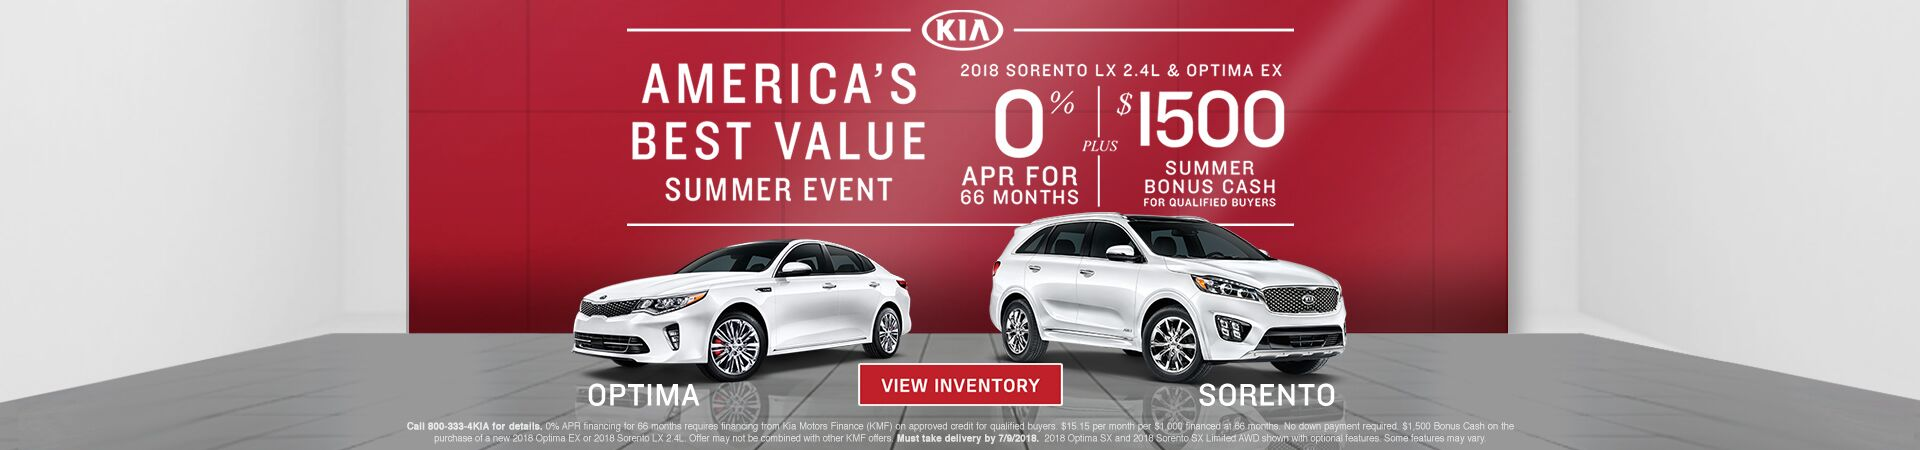 Americas Best Value SSE Optima-Sorento V2